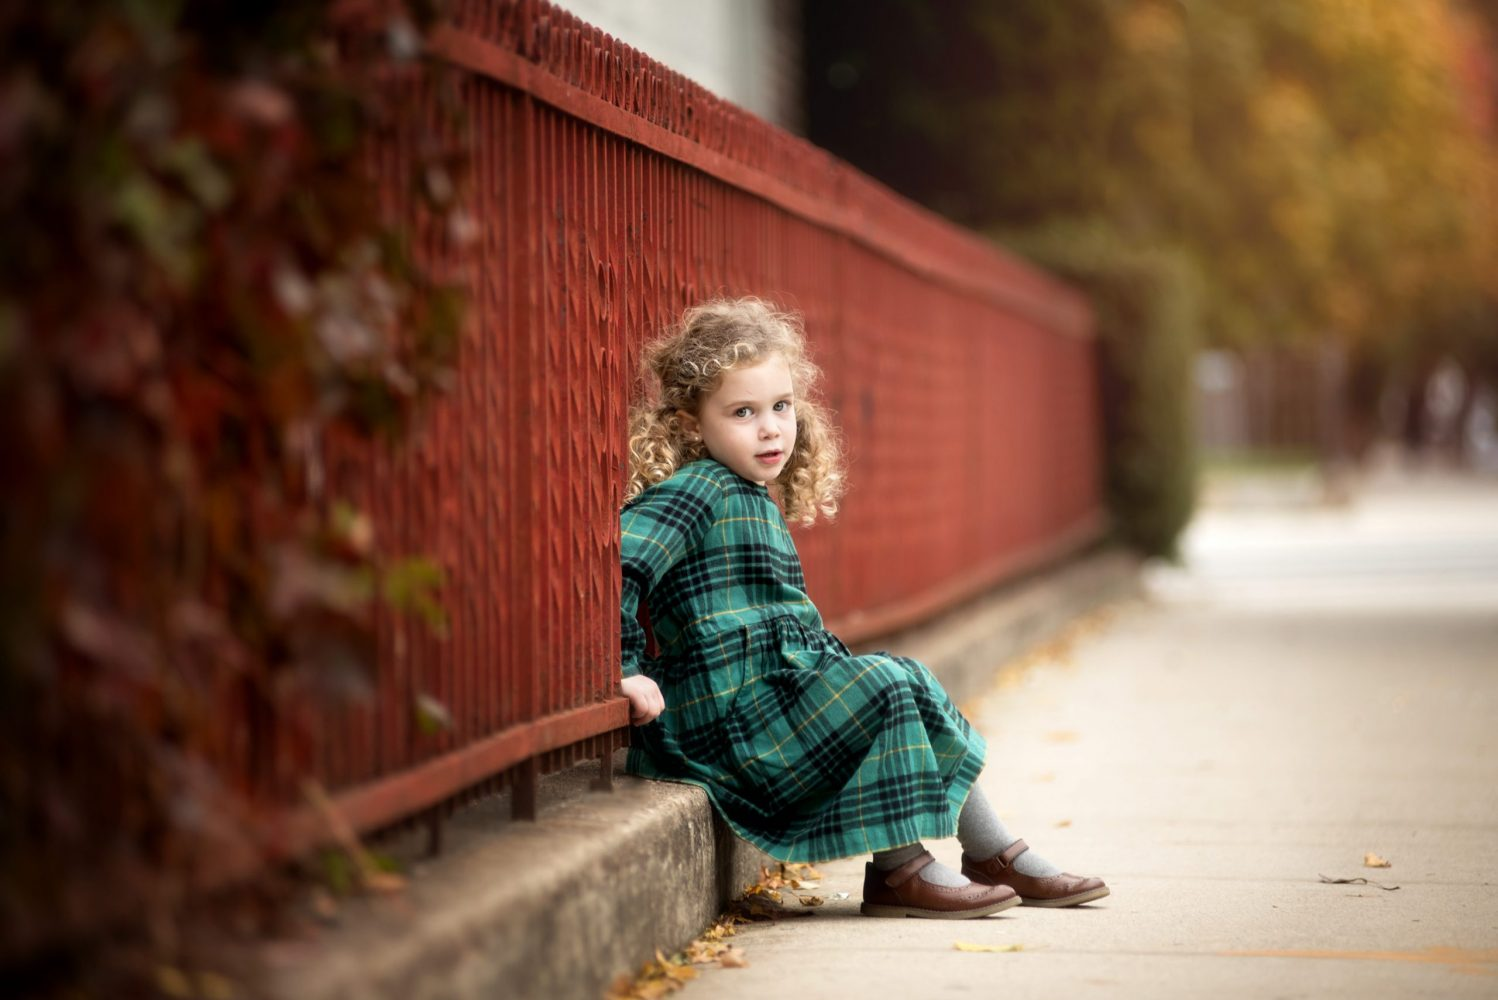 Portrait of little girl in plaid Hanna Anderson dress sitting by red gate in Brooklyn NY Hanna